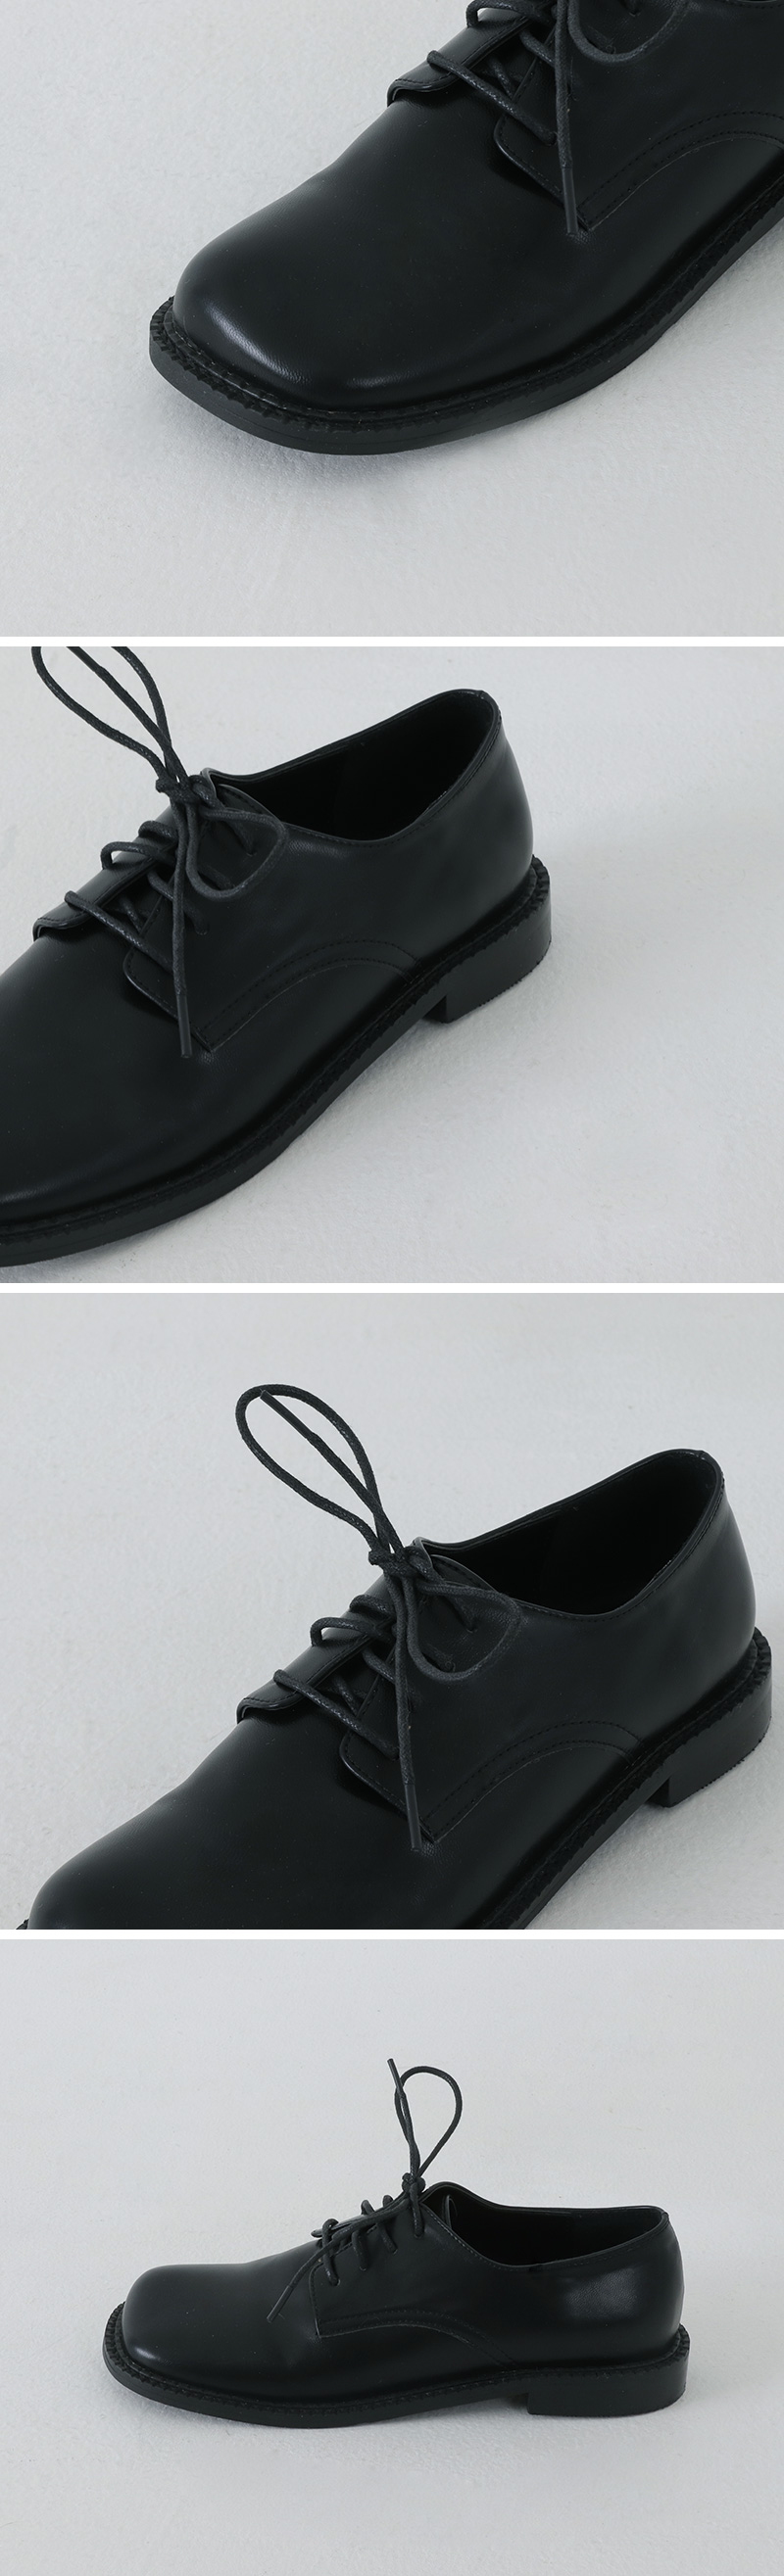 Solid Black Square Derby Loafers